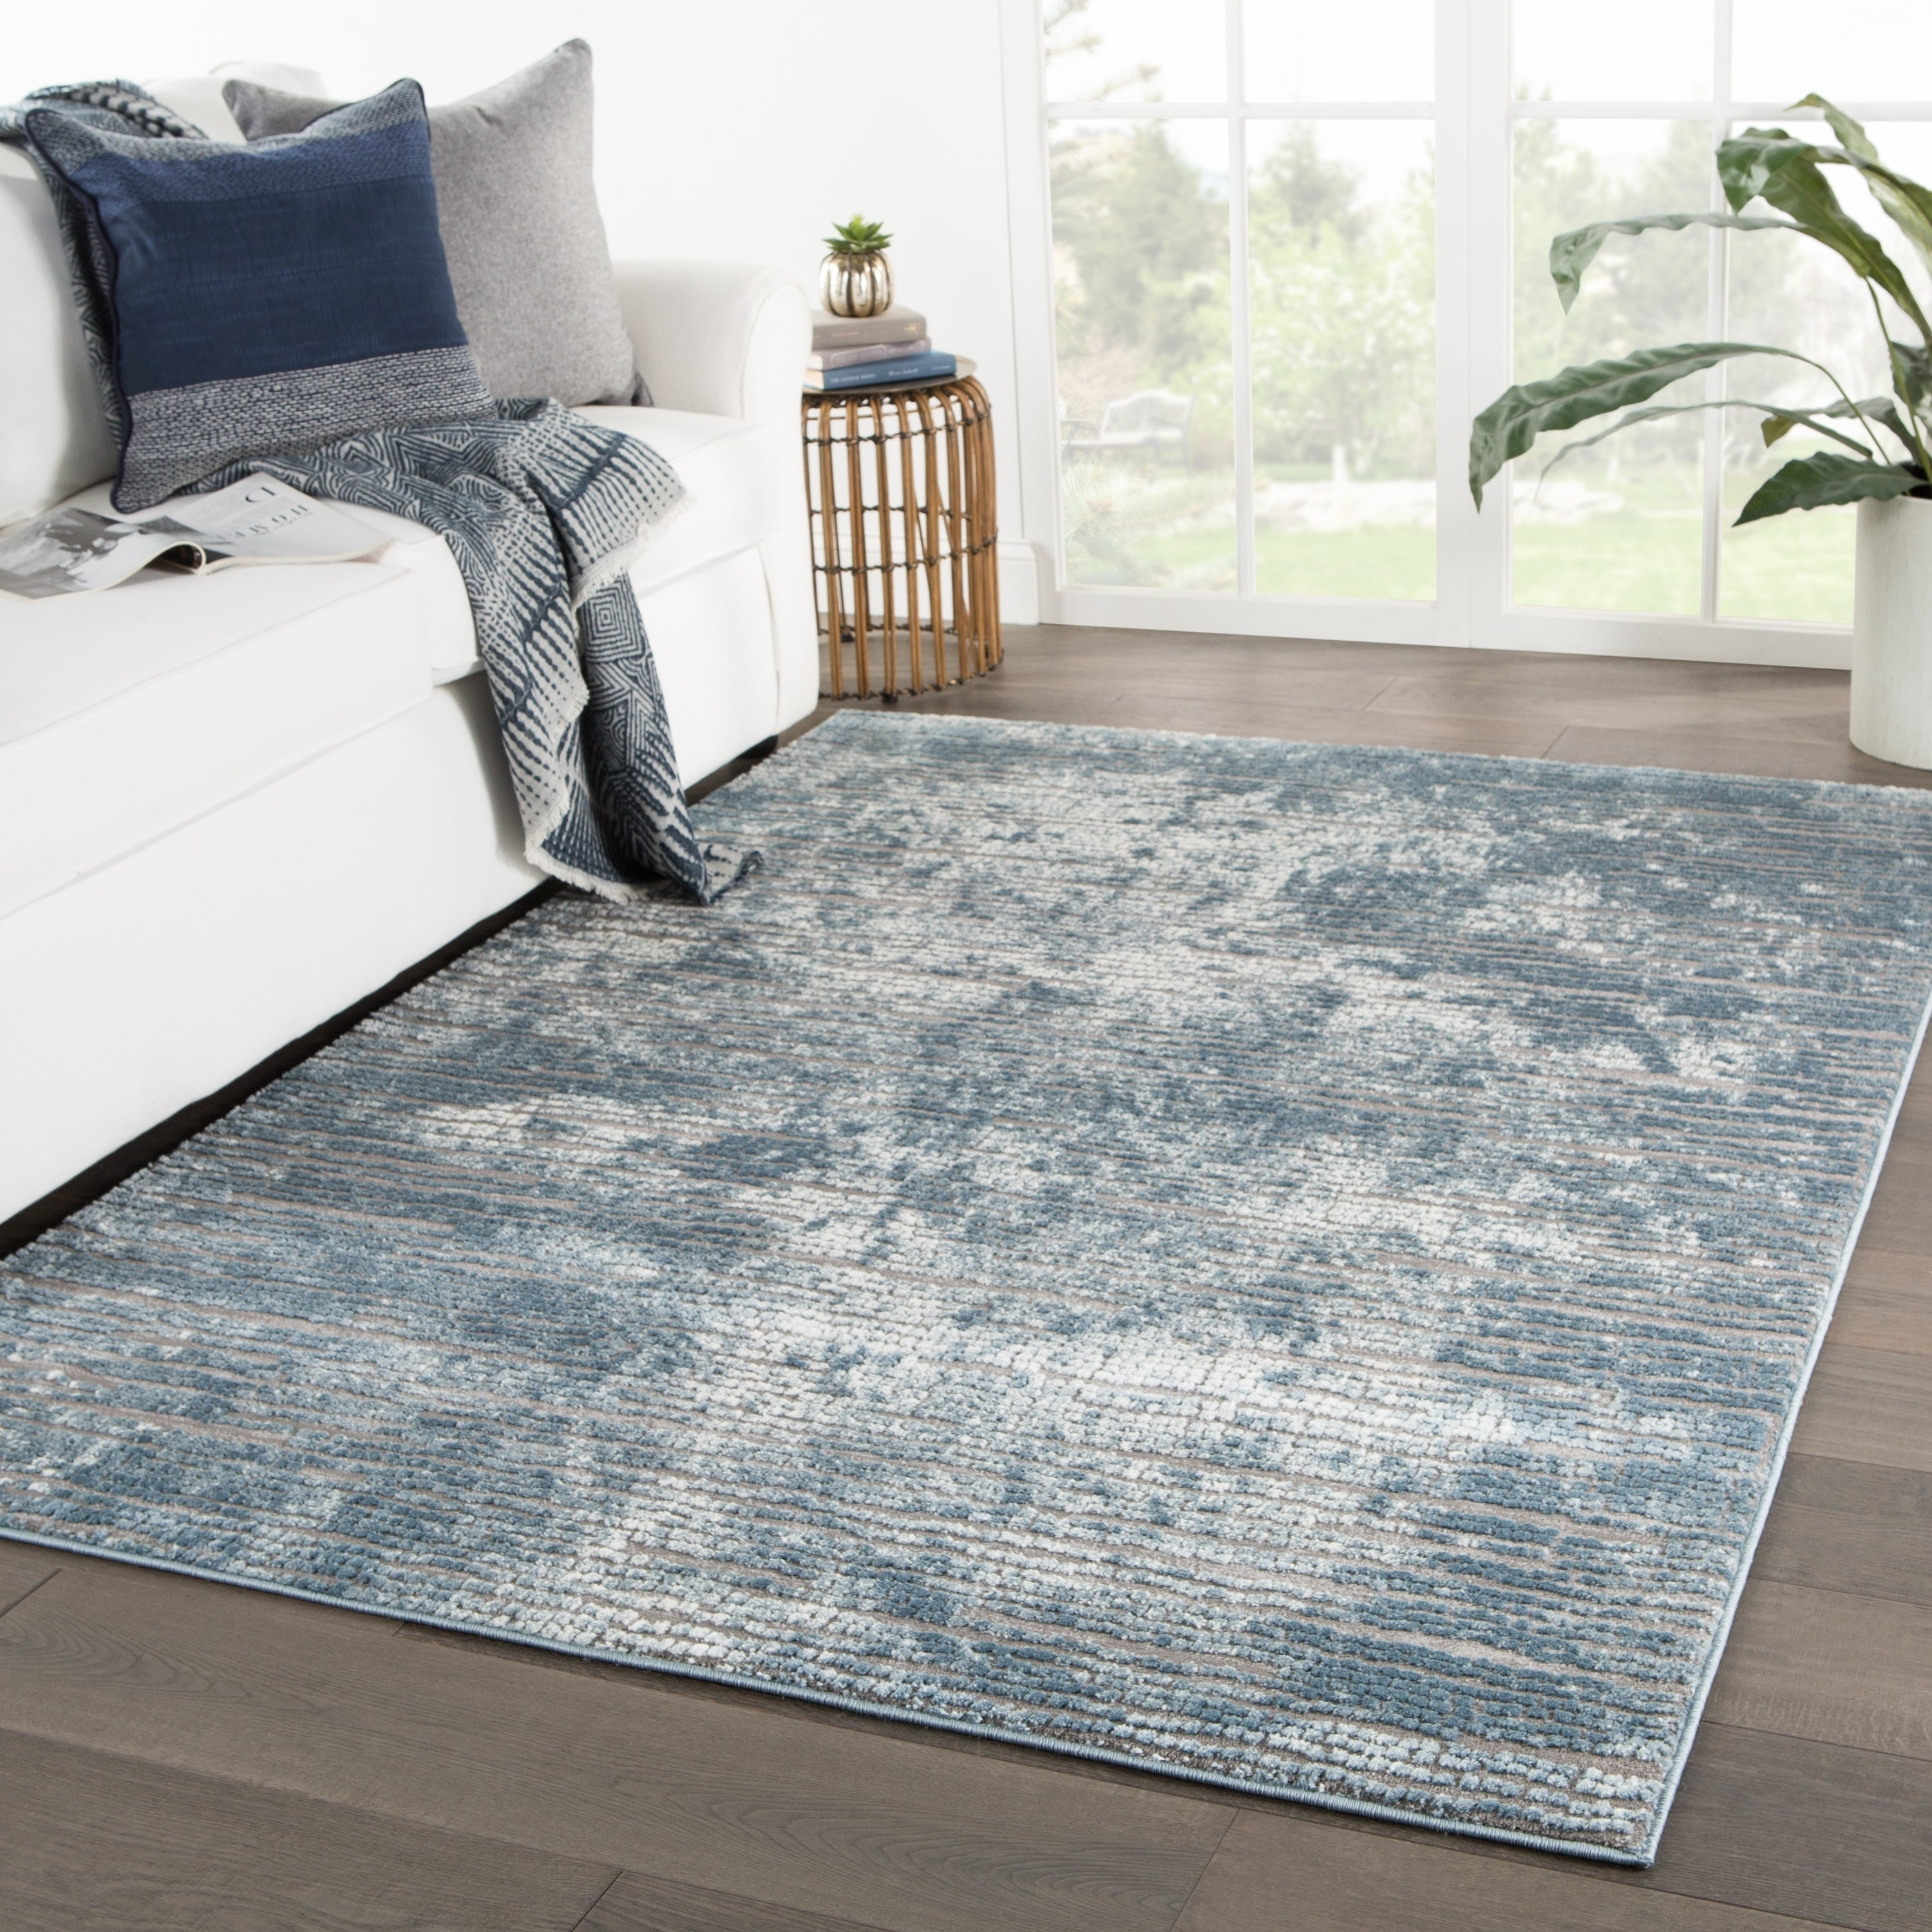 Picture of: Galaway Abstract Area Rug Overstock 23554283 Blue Grey 4 3 X 6 1